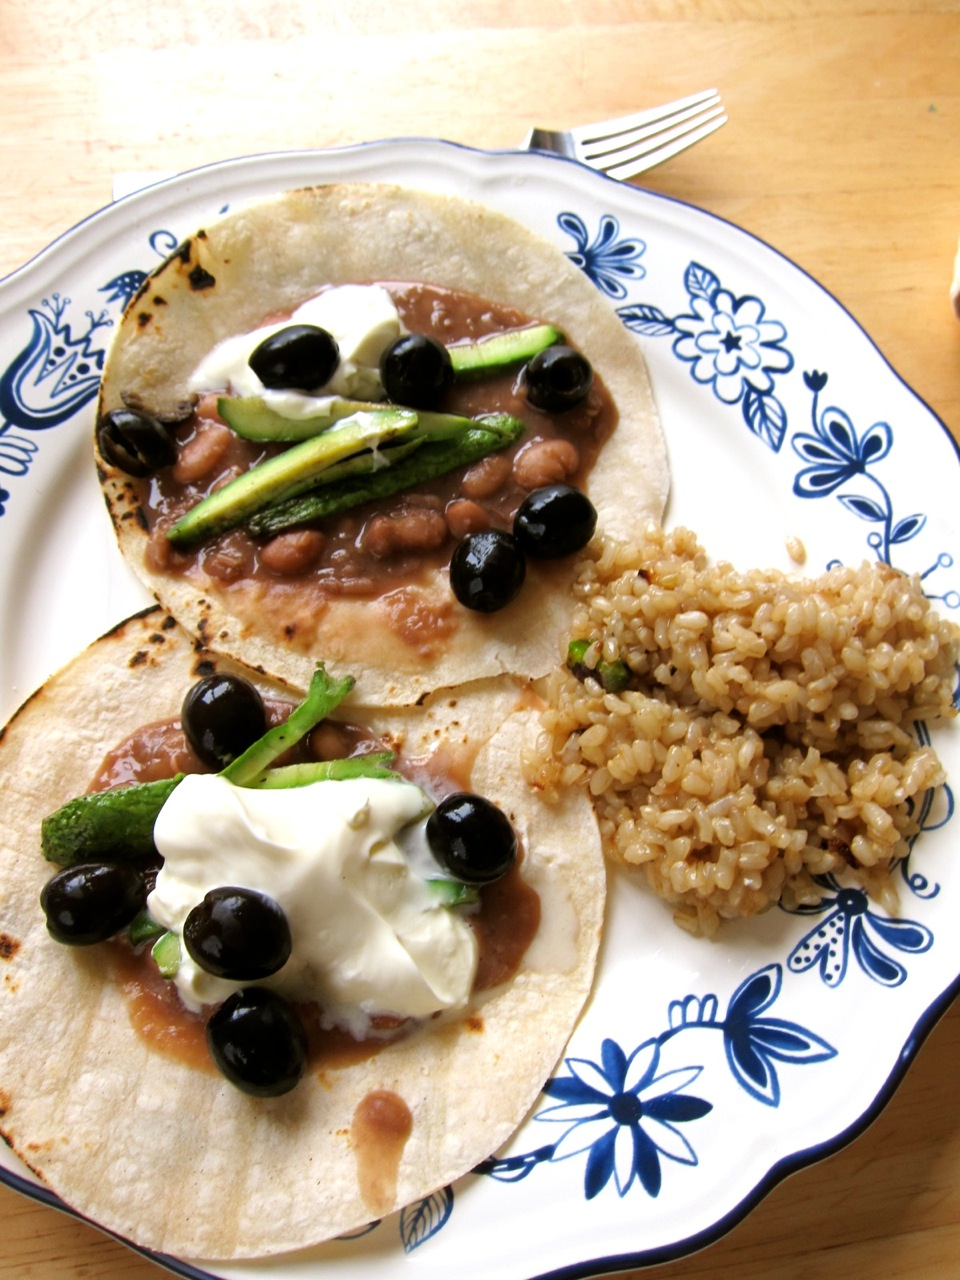 Tacos topped with dollops of Plain Angelito are a true summer treat. These simple tacos here also have black olives, roasted zucchini and fresh pinto beans.